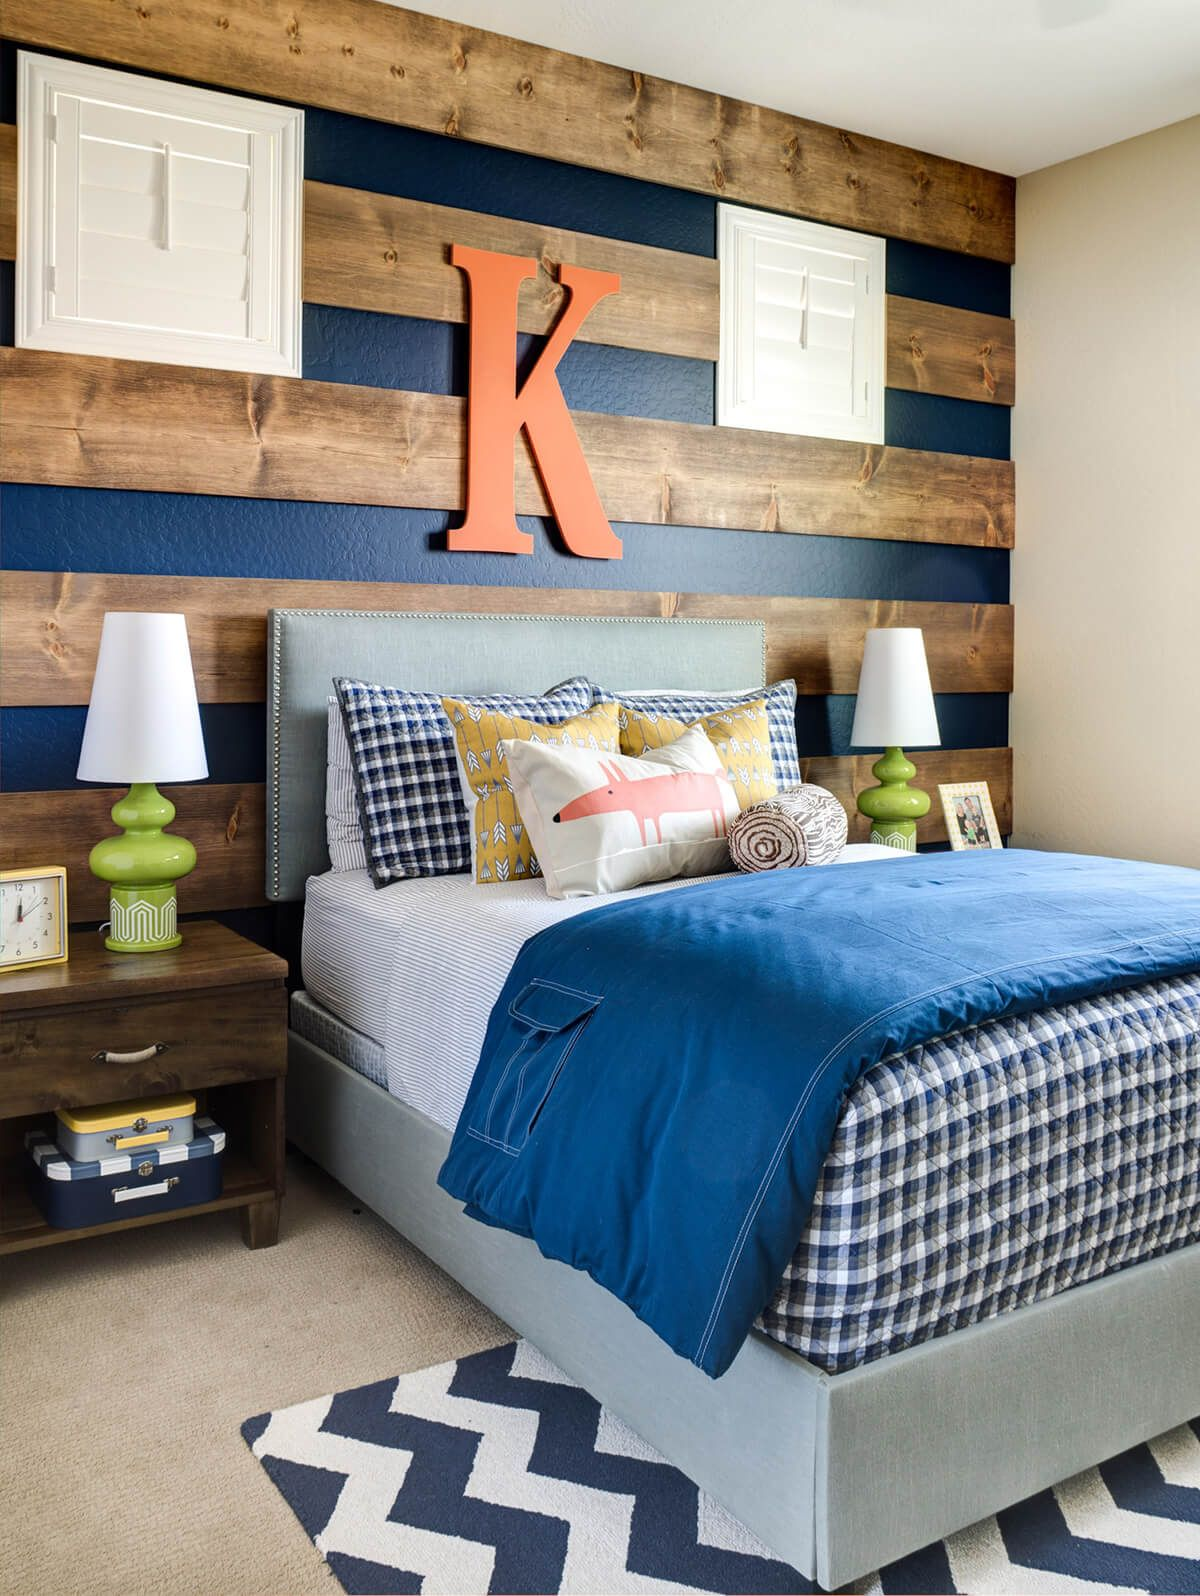 33 Cool Teenage Boy Room Decor Ideas New Room Big Boy Room